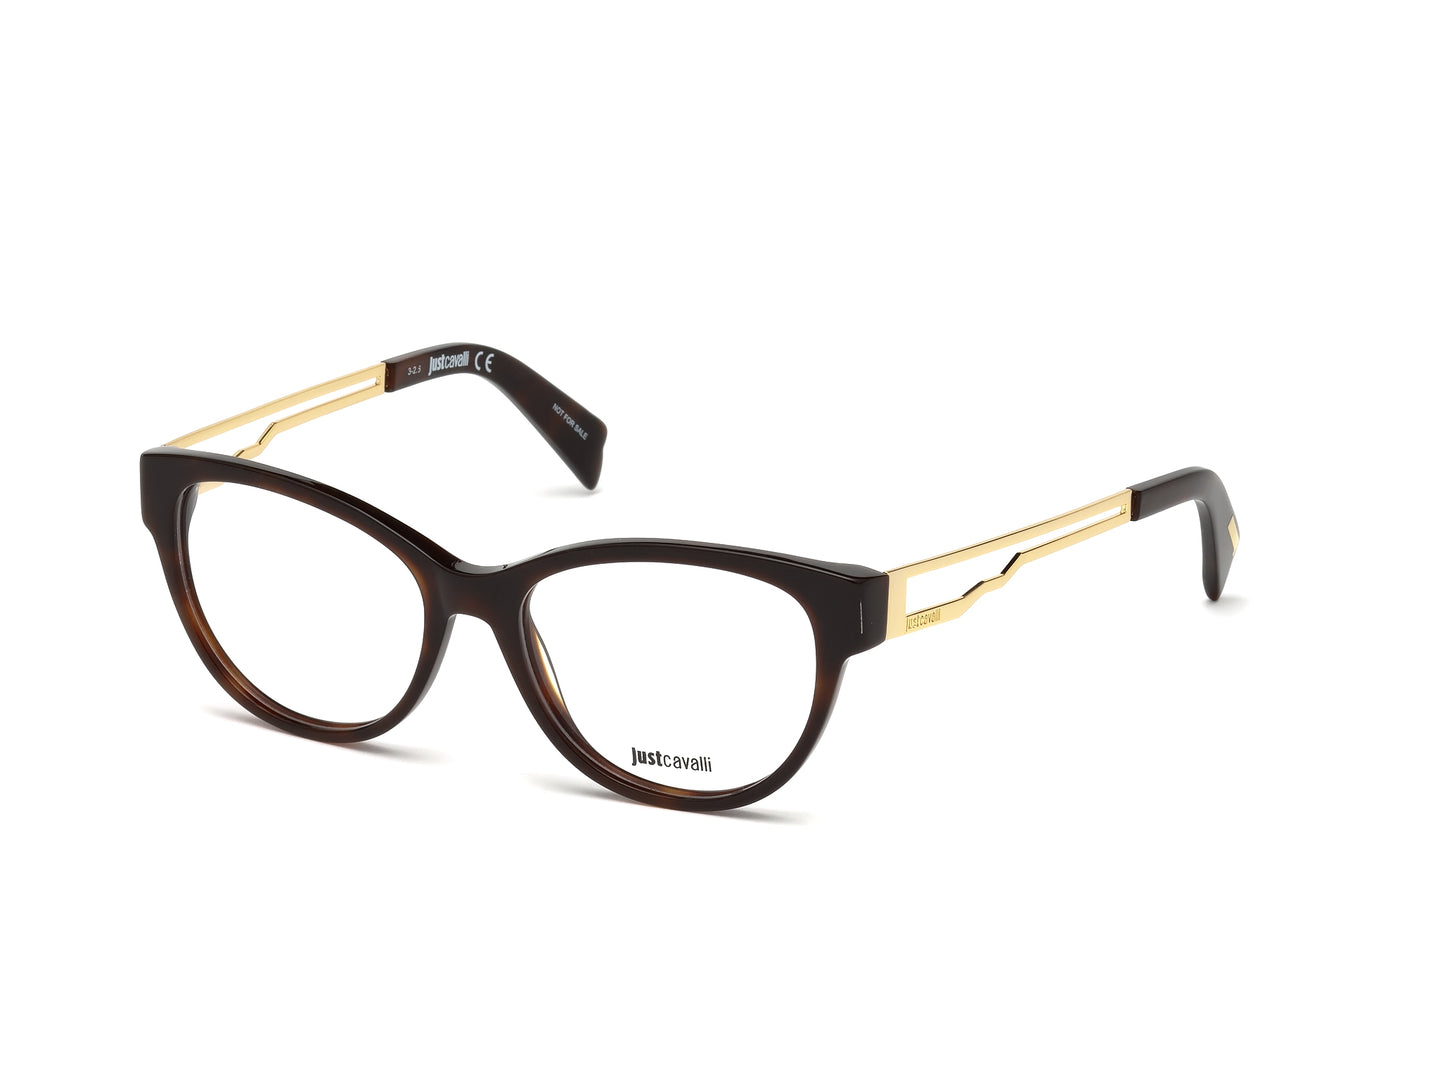 Just Cavalli Plastic Frame-JC0802